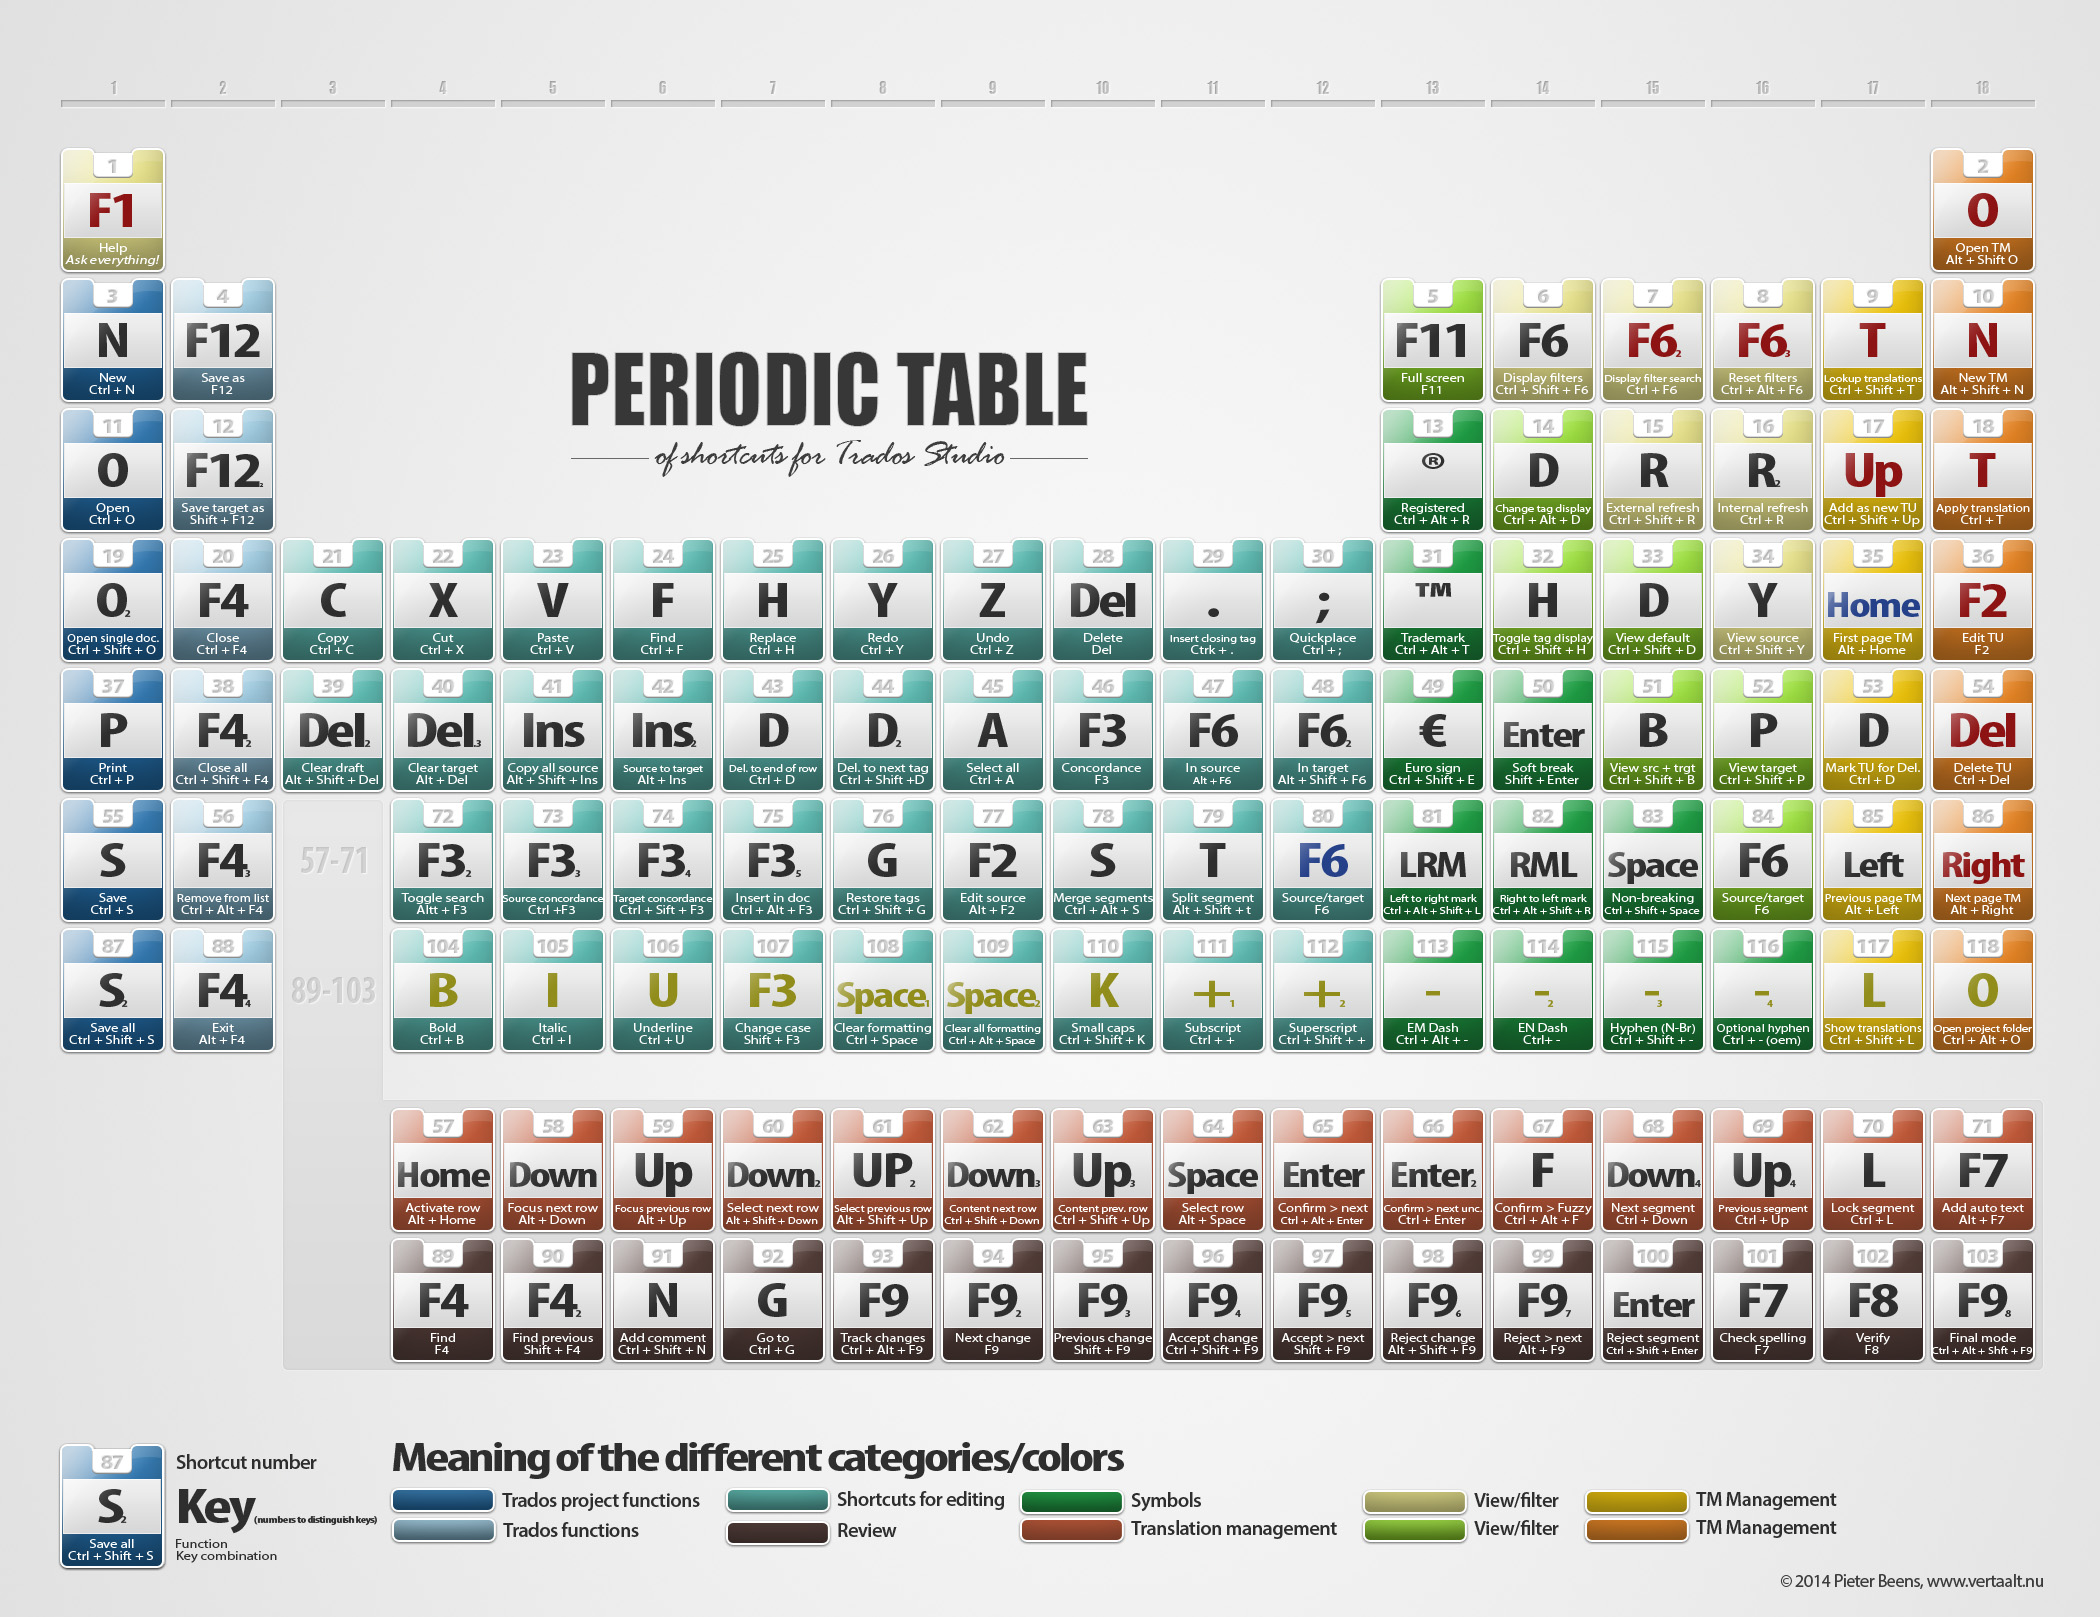 The periodic table of trados shortcuts trados studios 20112014 download the periodic table urtaz Gallery